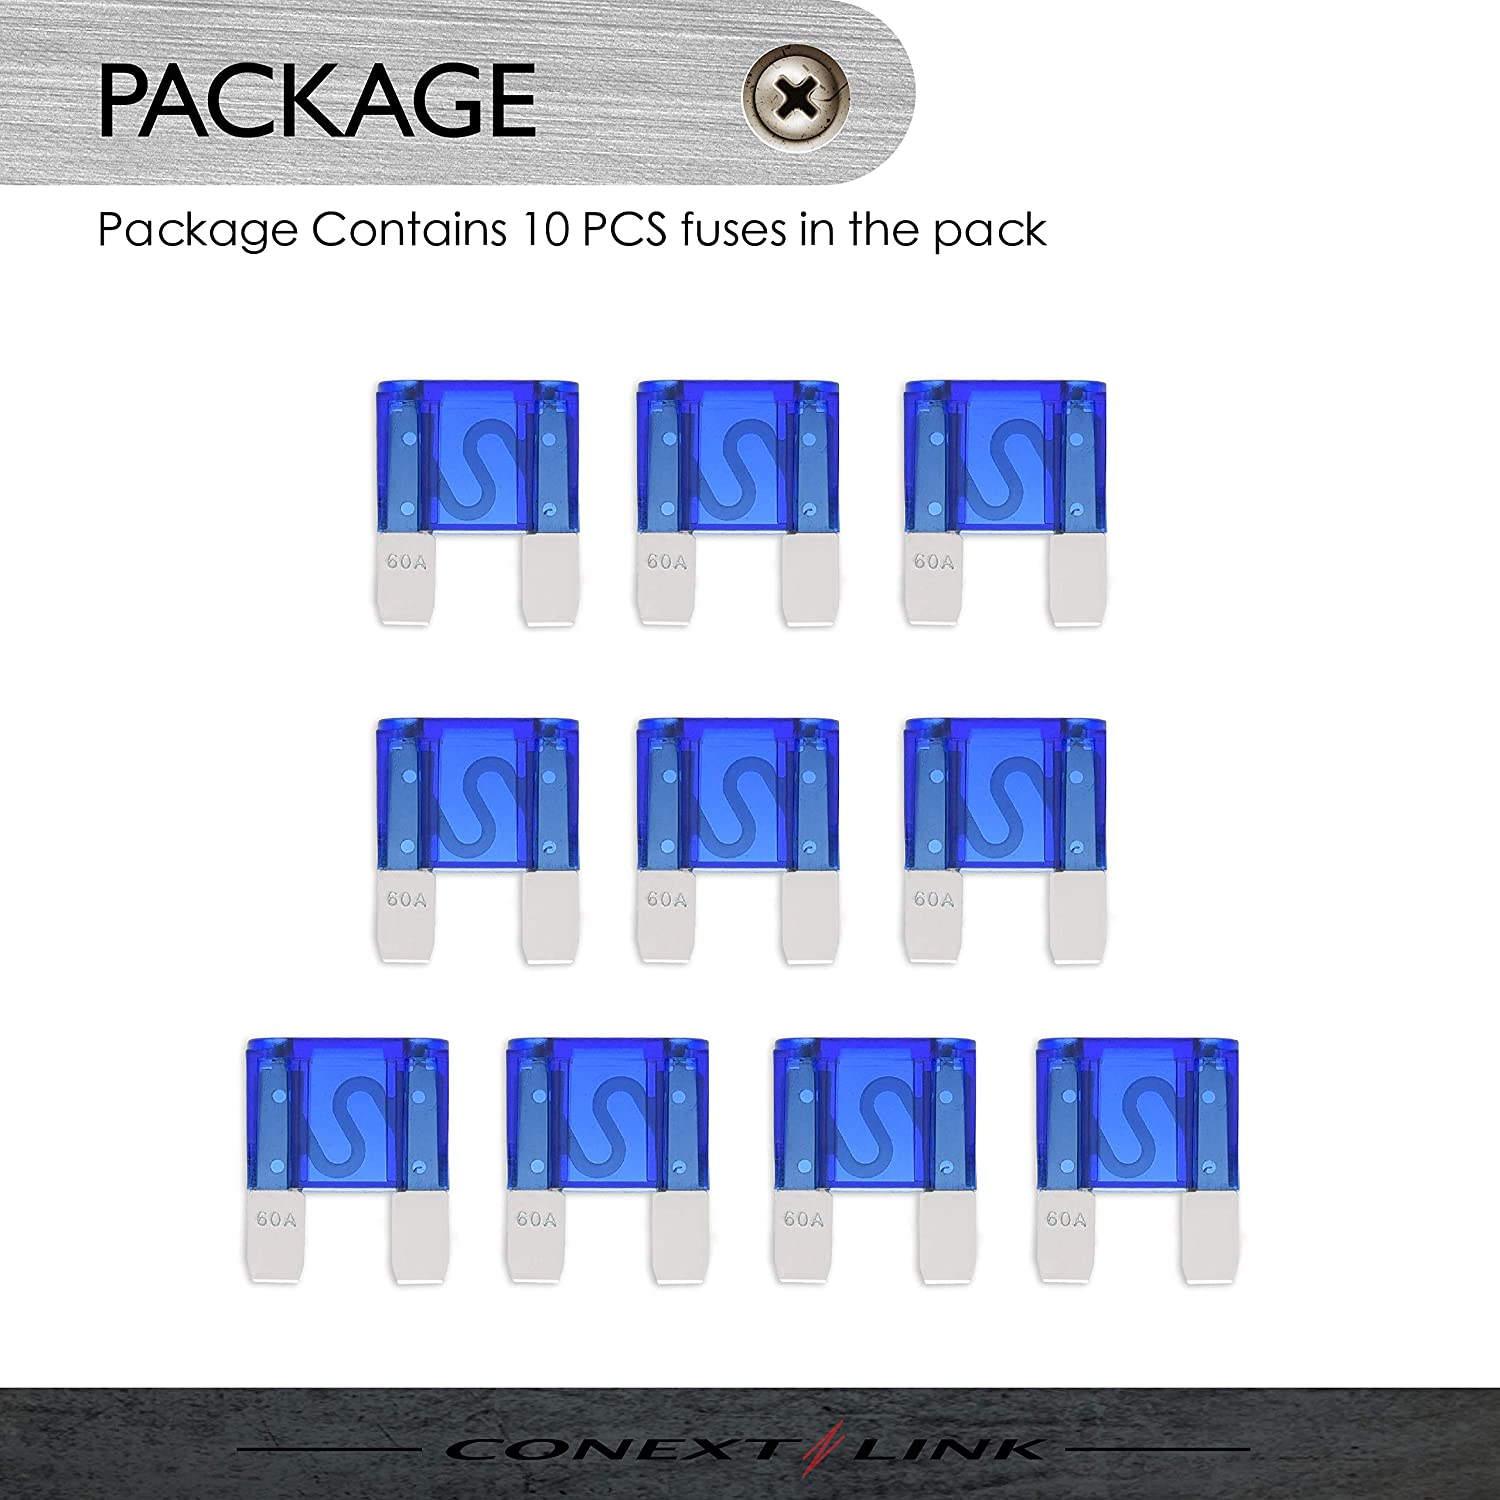 Conext Link AFS60-10 Nickel 60 Amp AFS Fuse 10 Pack